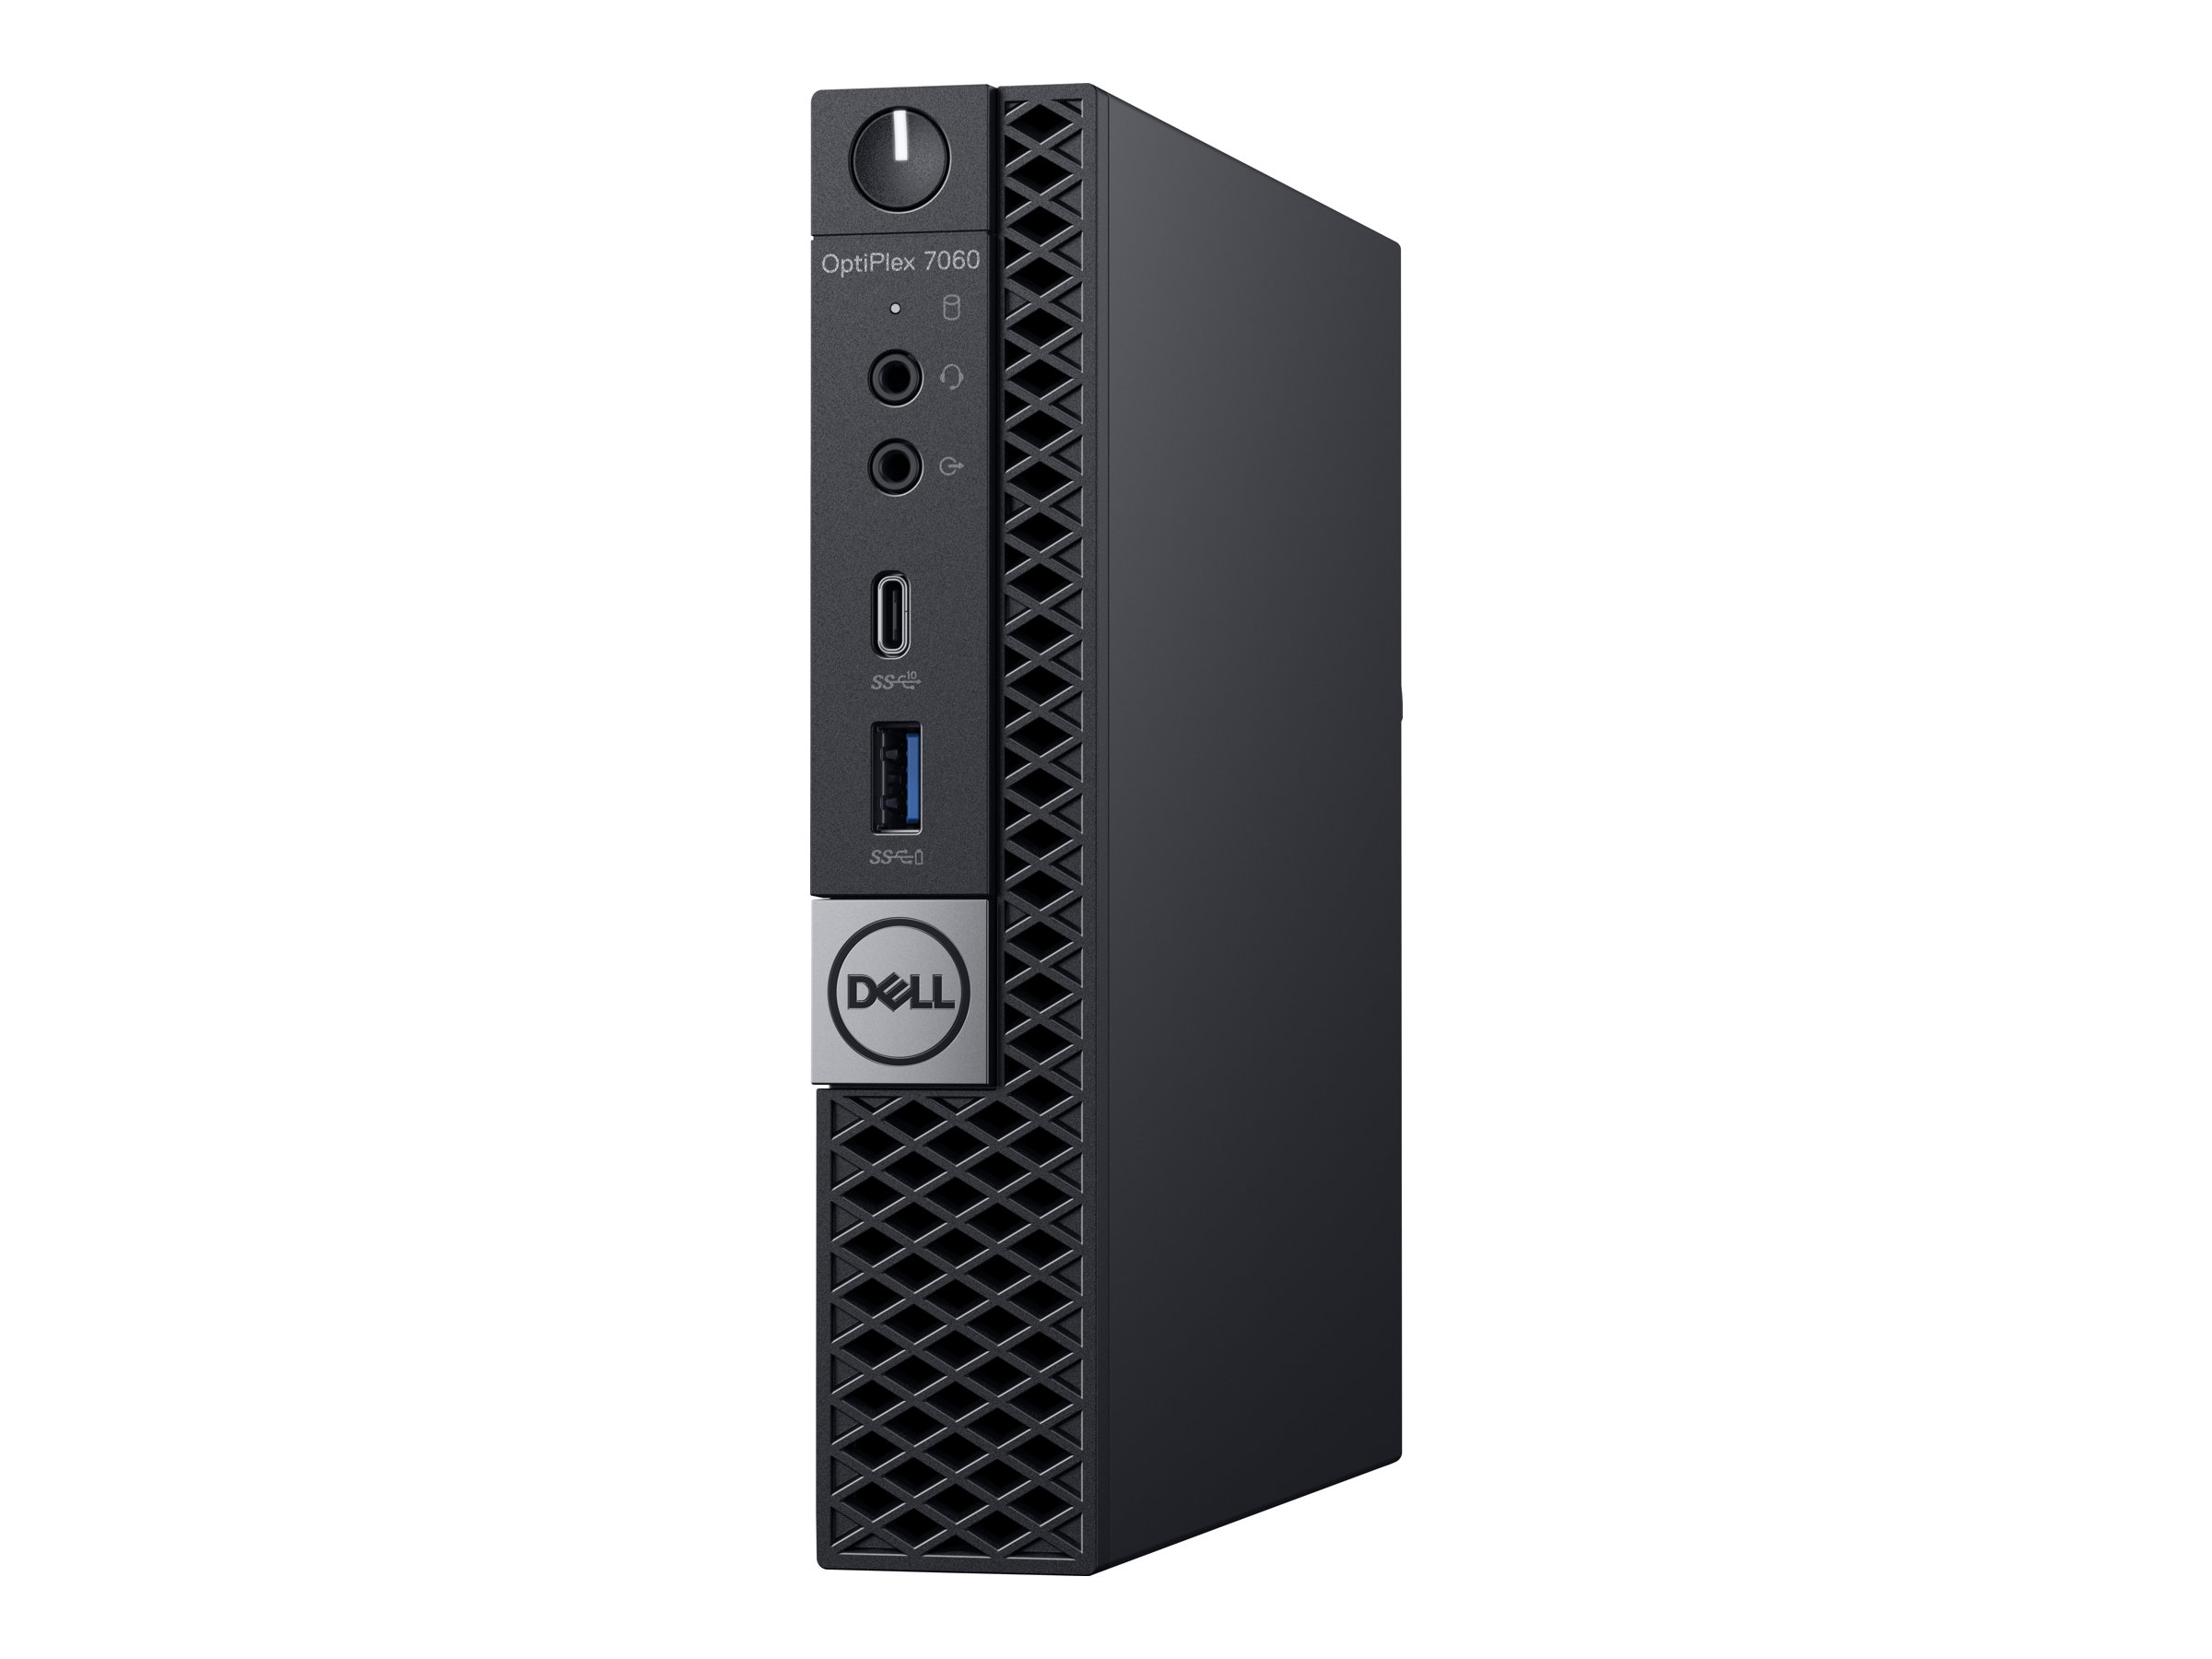 Dell OptiPlex 7060 - Micro - 1 x Core i7 8700T / 2.4 GHz - RAM 8 GB - SSD 256 GB - UHD Graphics 630